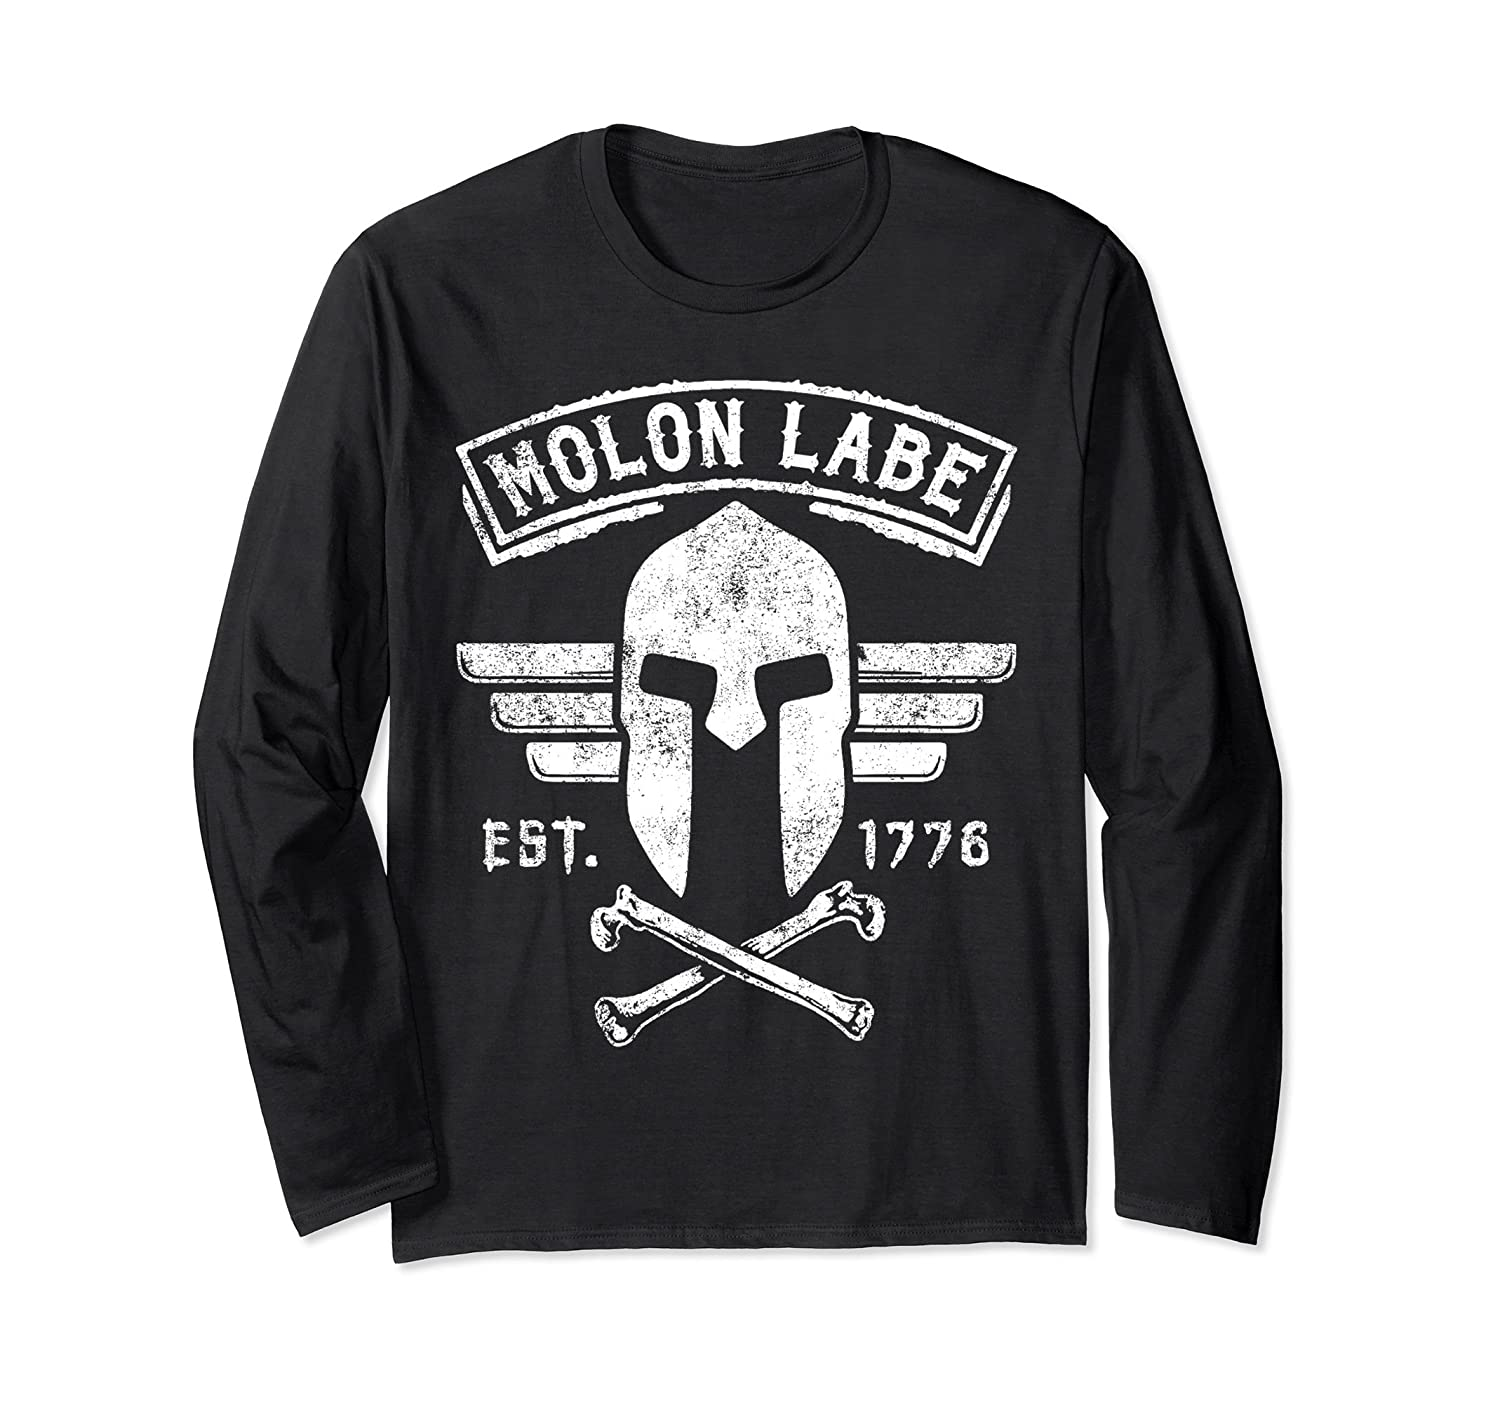 MOLON LABE LONG SLEEVE TSHIRT, 2ND AMENDMENT T-SHIRT-alottee gift